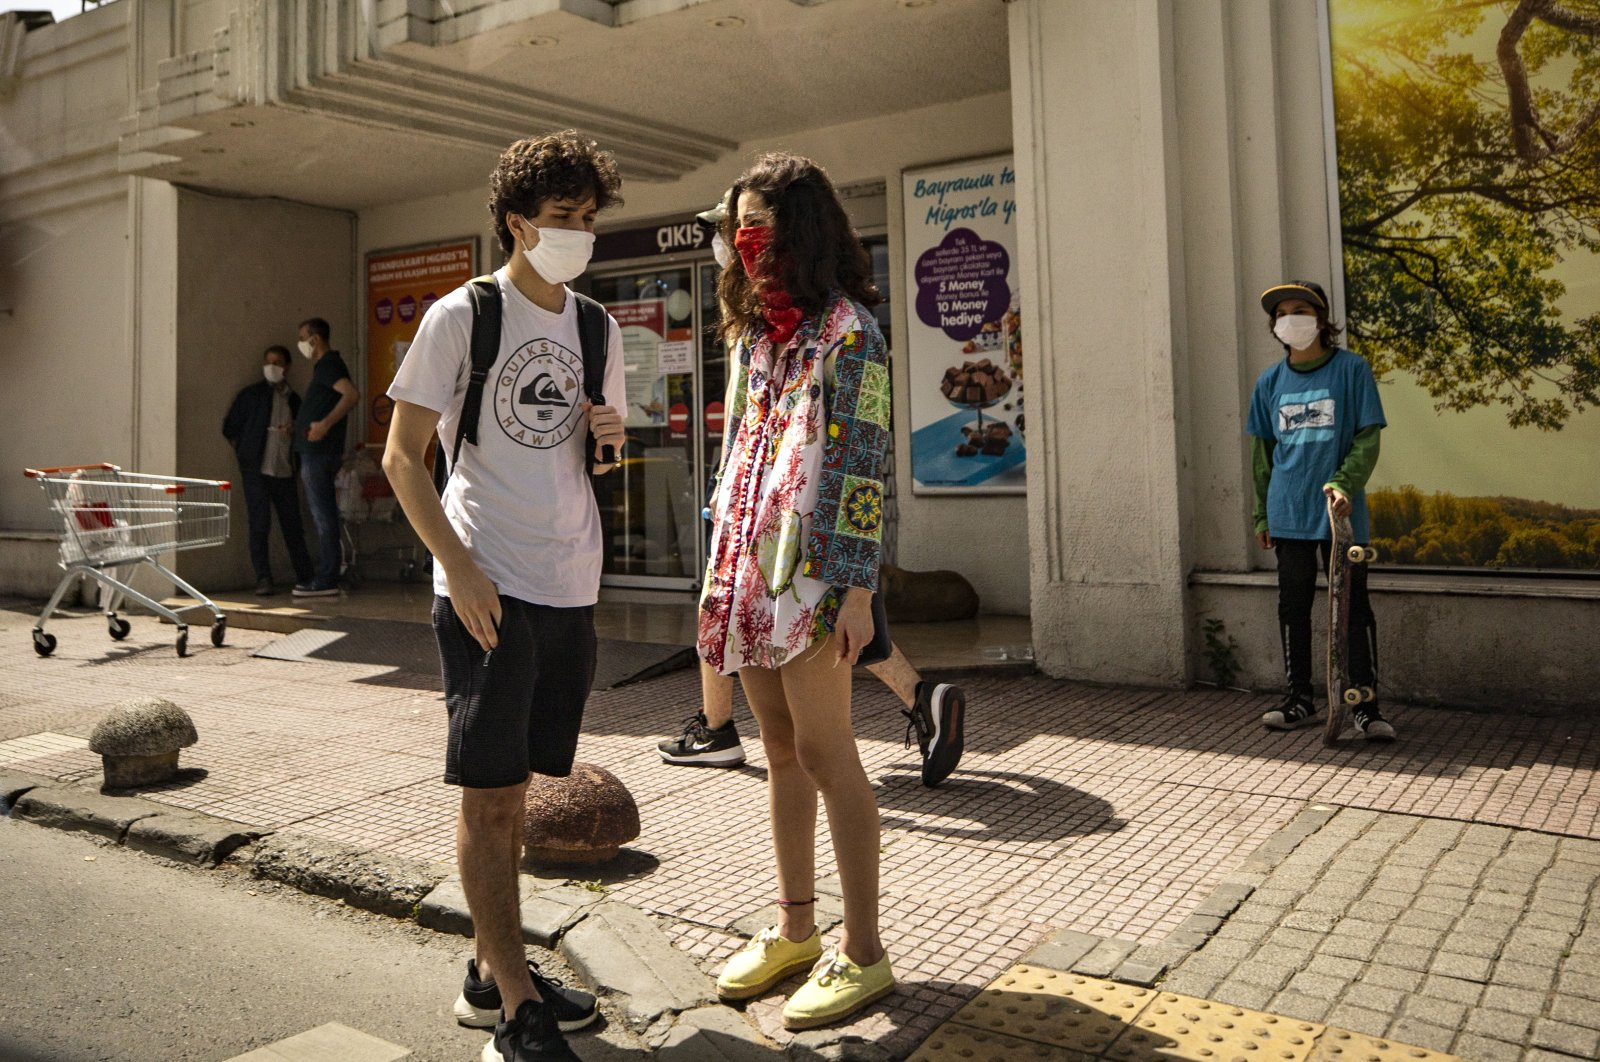 Two teenagers enjoy a day outside after youth ages 15 to 20 were allowed to go out for a limited time as part of eased coronavirus restrictions, Istanbul, Turkey, May 15, 2020. (AA Photo)